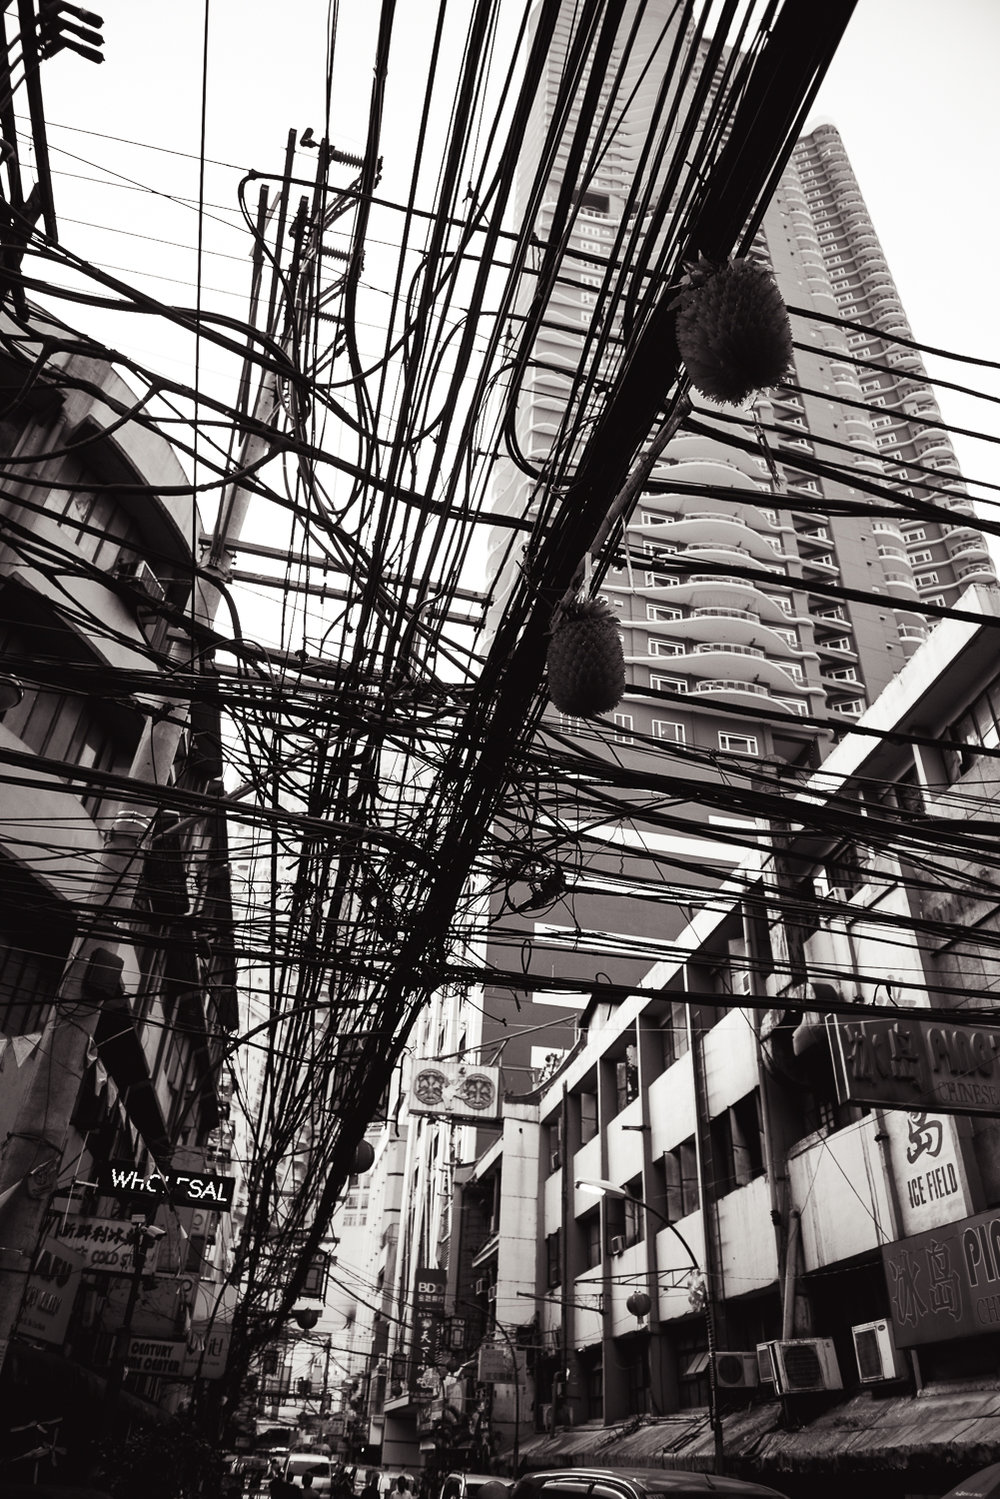 During one of the last days in the Philippines, we visited the Chinatown section of Manila. Like most of the Metro Manila region, Chinatown was extremely crowded and chaotic. The infrastructure was no different. Walking through Chinatown, one of the things I noticed when looking past the many fruit stands, bakeries, and Chinese restaurants was this mangle array of power lines. Just like the Philippines itself, this section of wires was crowded, chaotic, and unorganized, yet somehow still manages to get the job done.